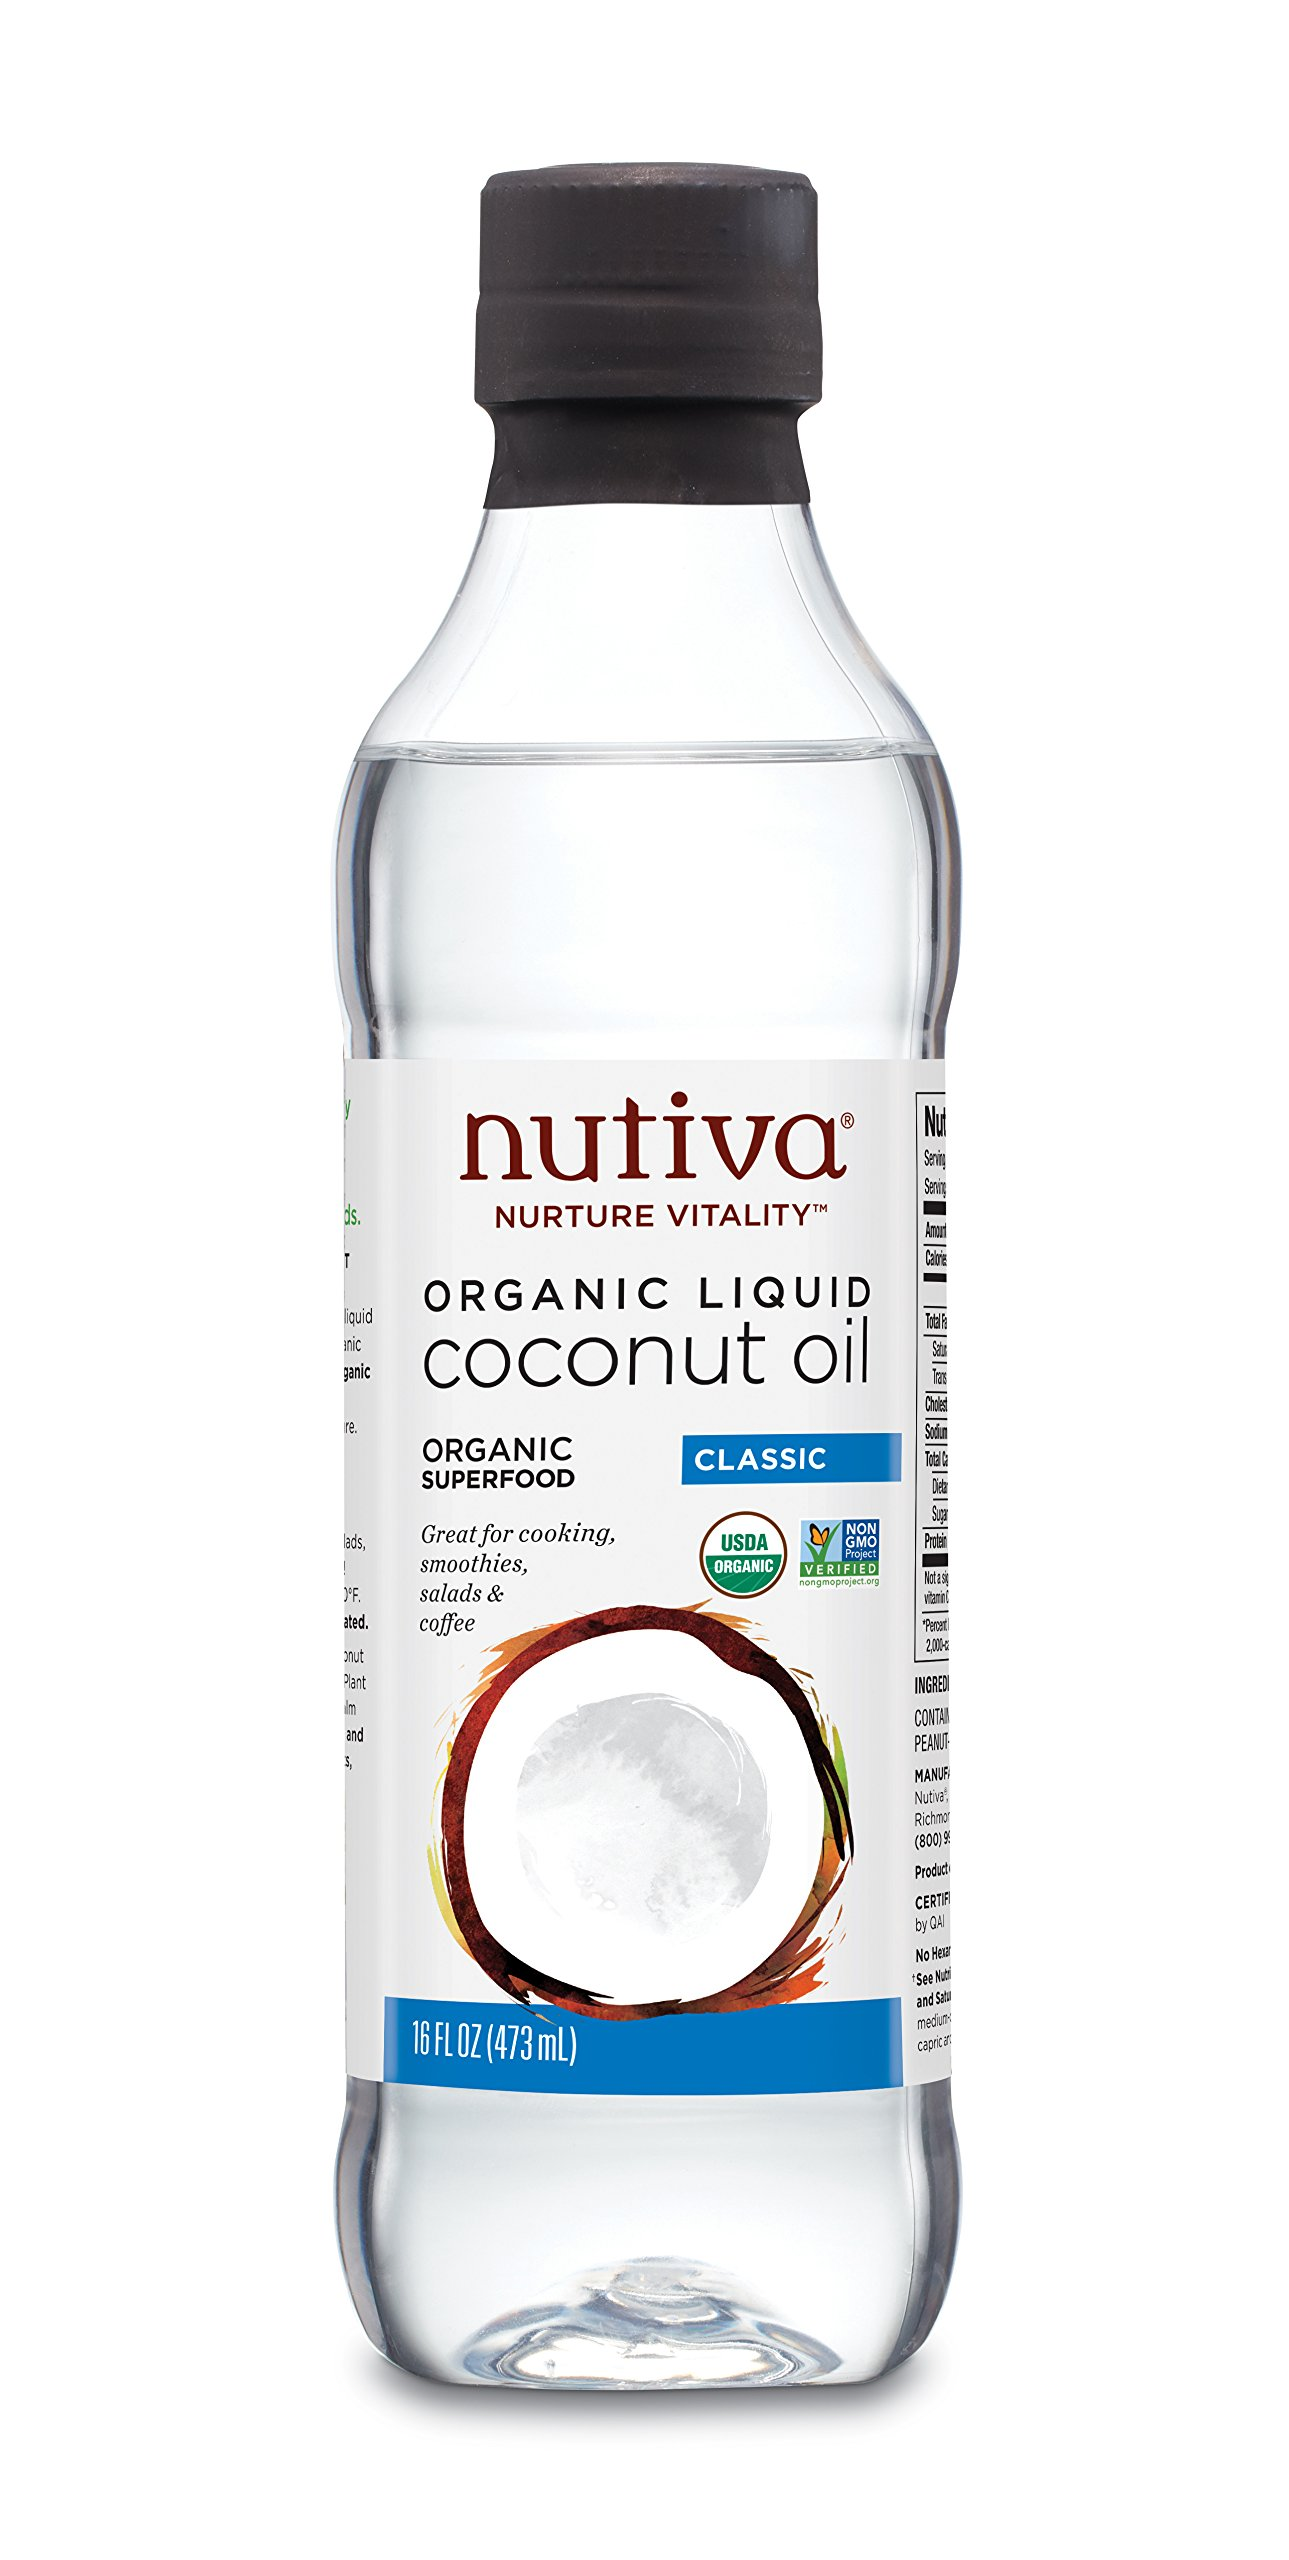 Nutiva Organic, Unrefined, Liquid Coconut Oil from Fresh, non-GMO, Sustainably Farmed Coconuts, 16-ounce